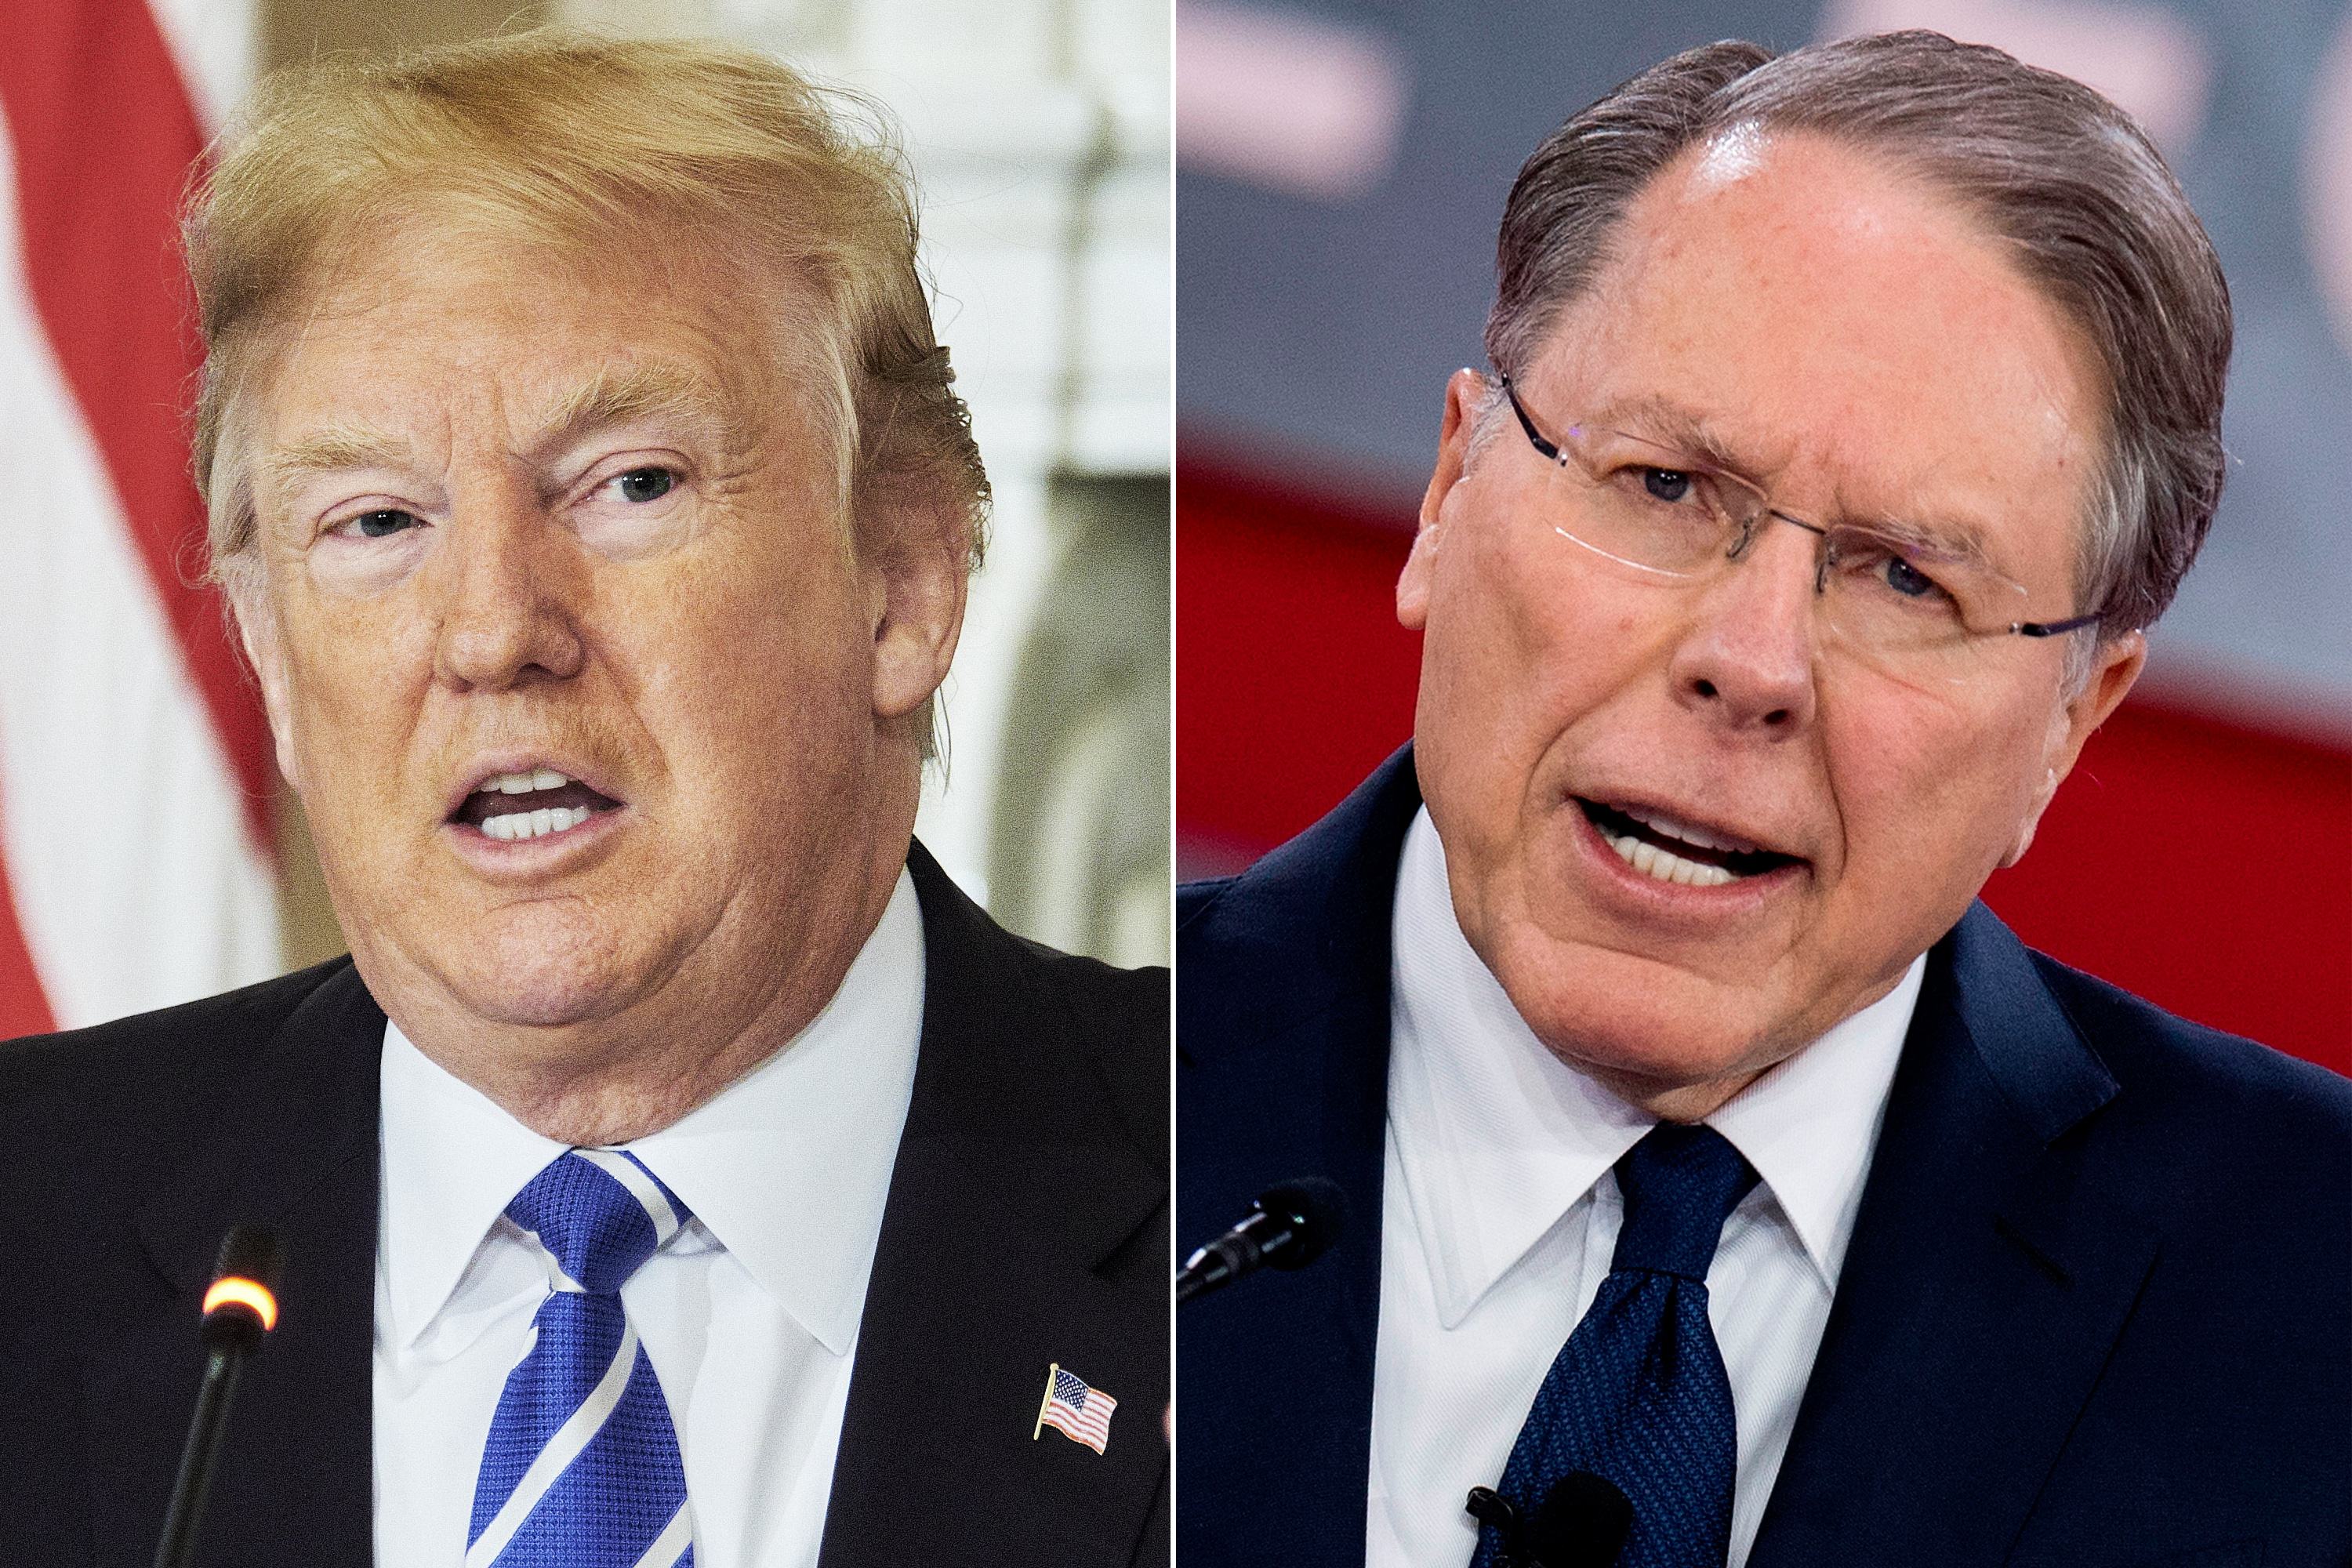 (L) President Donald Trump speaks during an infrastructure initiative meeting at the State Dining Room of the White House in Washington, D.C., on Monday, Feb. 12, 2018. (R) The National Rifle Association's (NRA) Executive Vice President and CEO Wayne LaPierre speaks during the 2018 Conservative Political Action Conference at National Harbor in Oxen Hill, Maryland on February 22, 2018